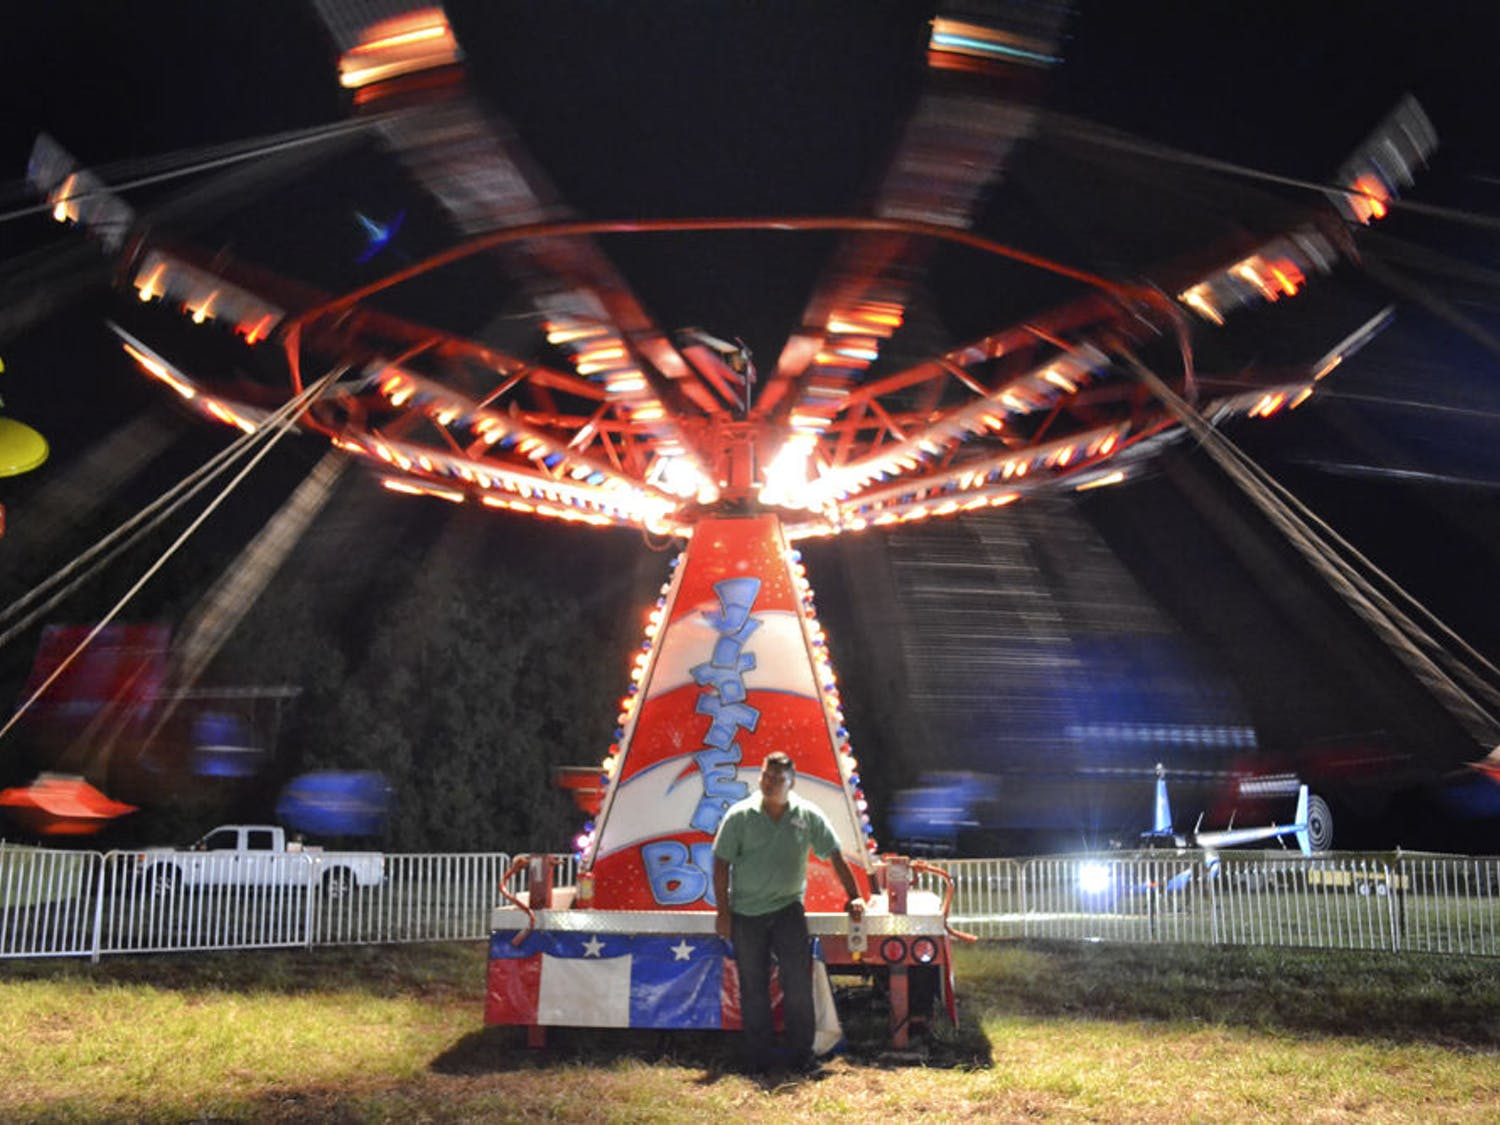 David Bocarando, a 22-year-old Big O Amusements employee, runs the Jitterbug ride at the Ohana Candy Cane Festival on Nov. 21, 2015. All profits from the festival went towards 100 Thanksgiving dinners for families in need.